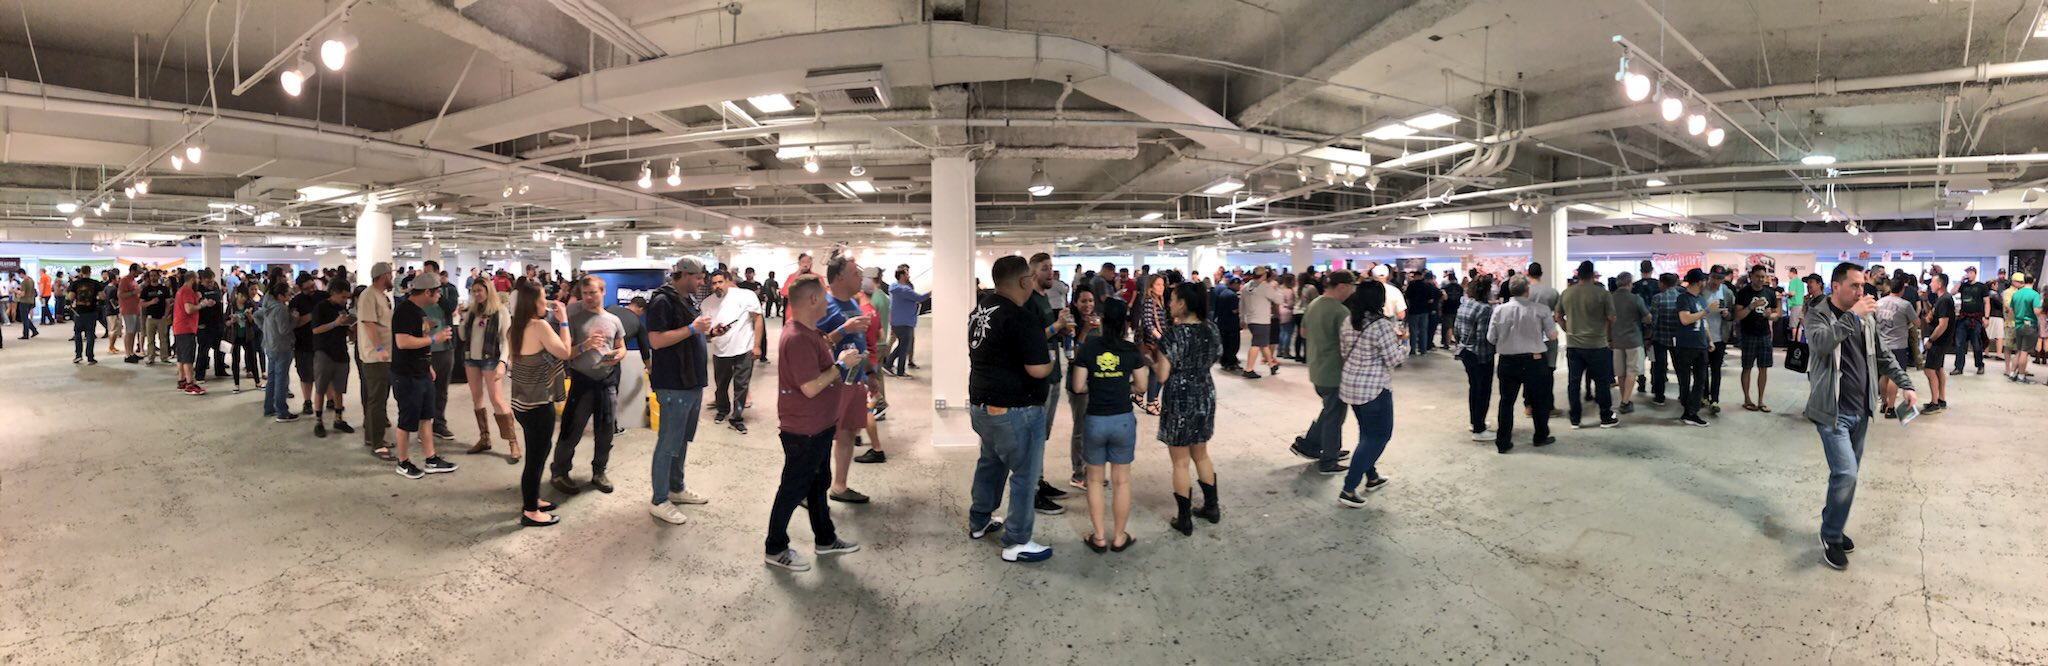 The line for Great Notion at BeerAdvocate Extreme Beer Fest in Los Angeles was one of the longest.